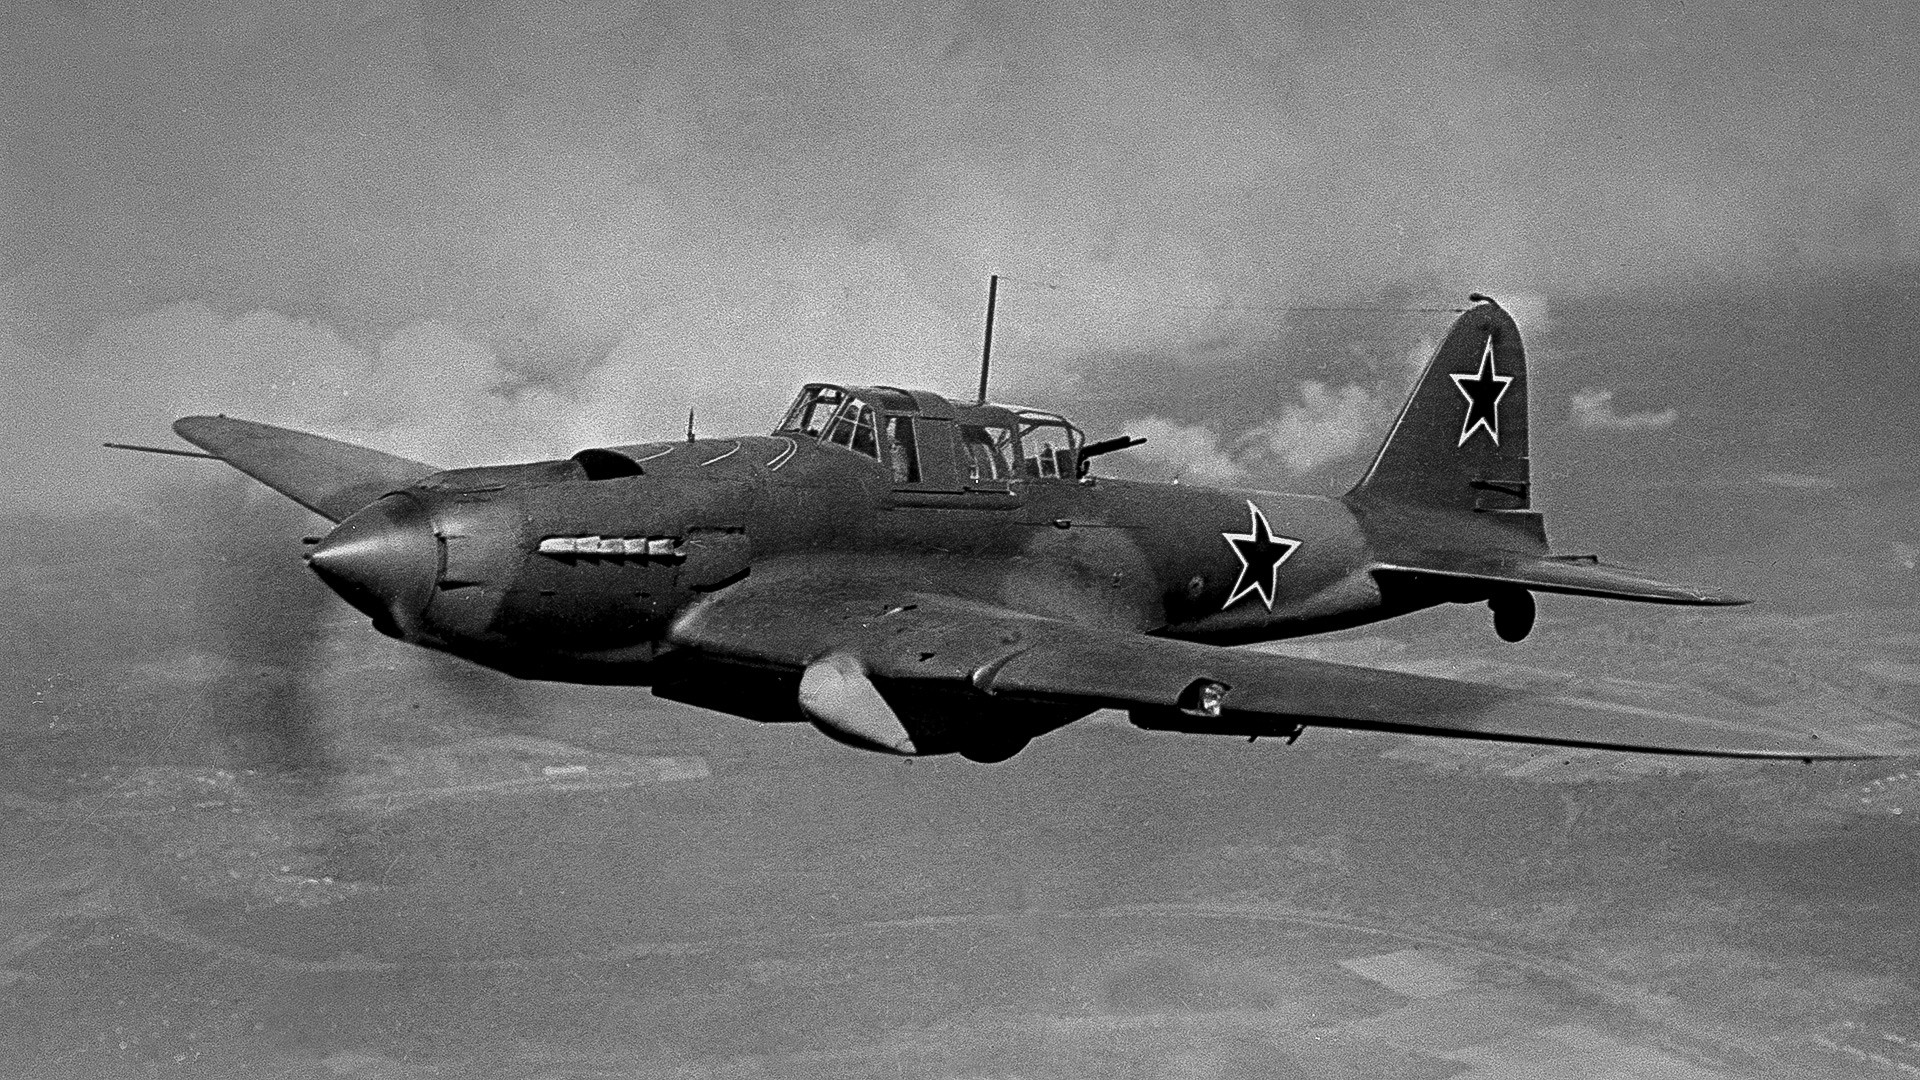 The key feature of the Il-2 was its armored-plating